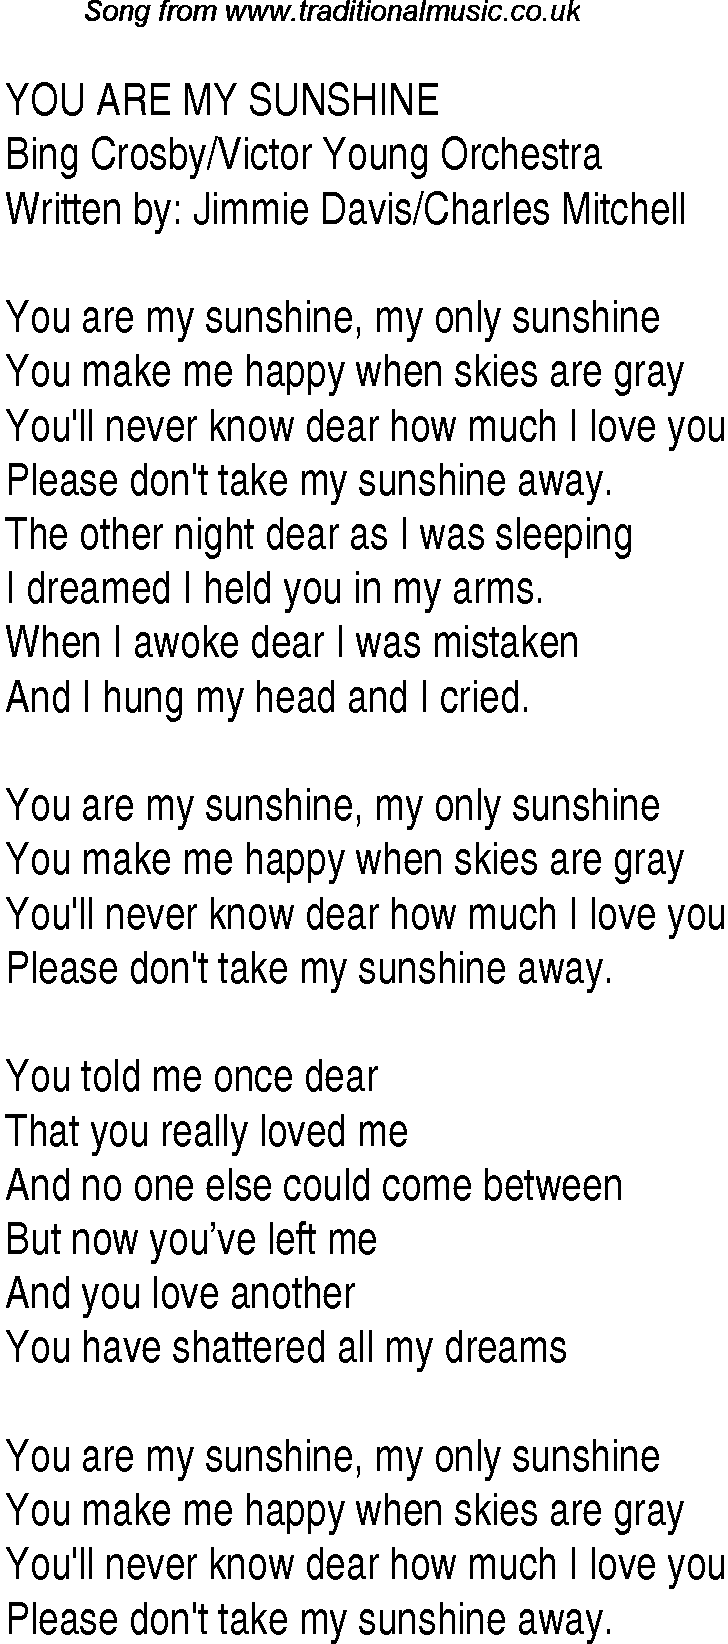 1940s Top Songs Lyrics For You Are My Sunshine